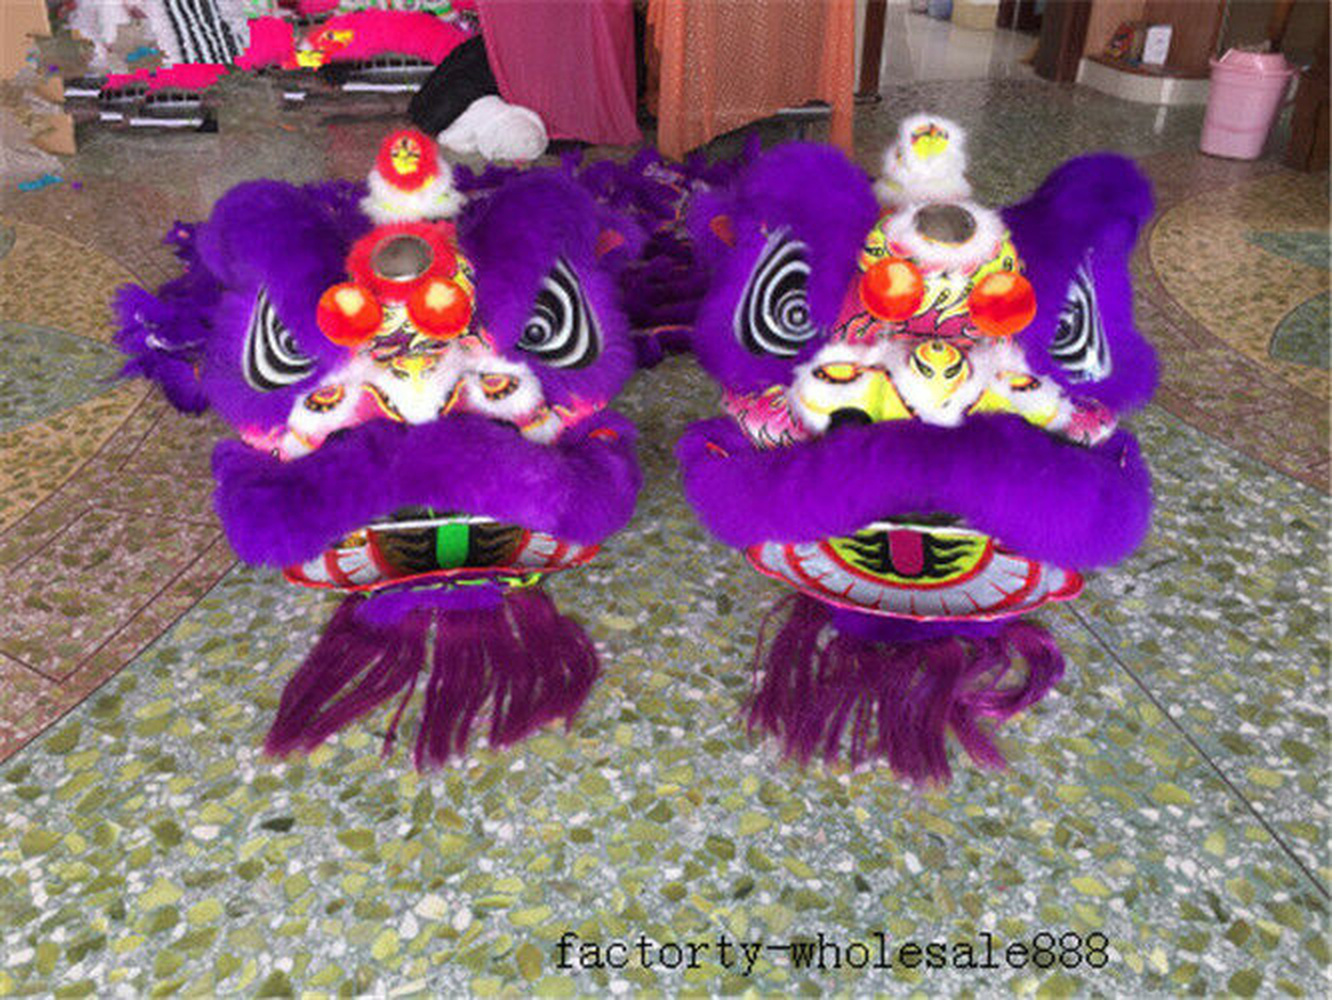 China Folk artLion Dance mascot Costume wool Southern purple Lion Costume Suits Cosplay Party Outfits Clothing Advertising